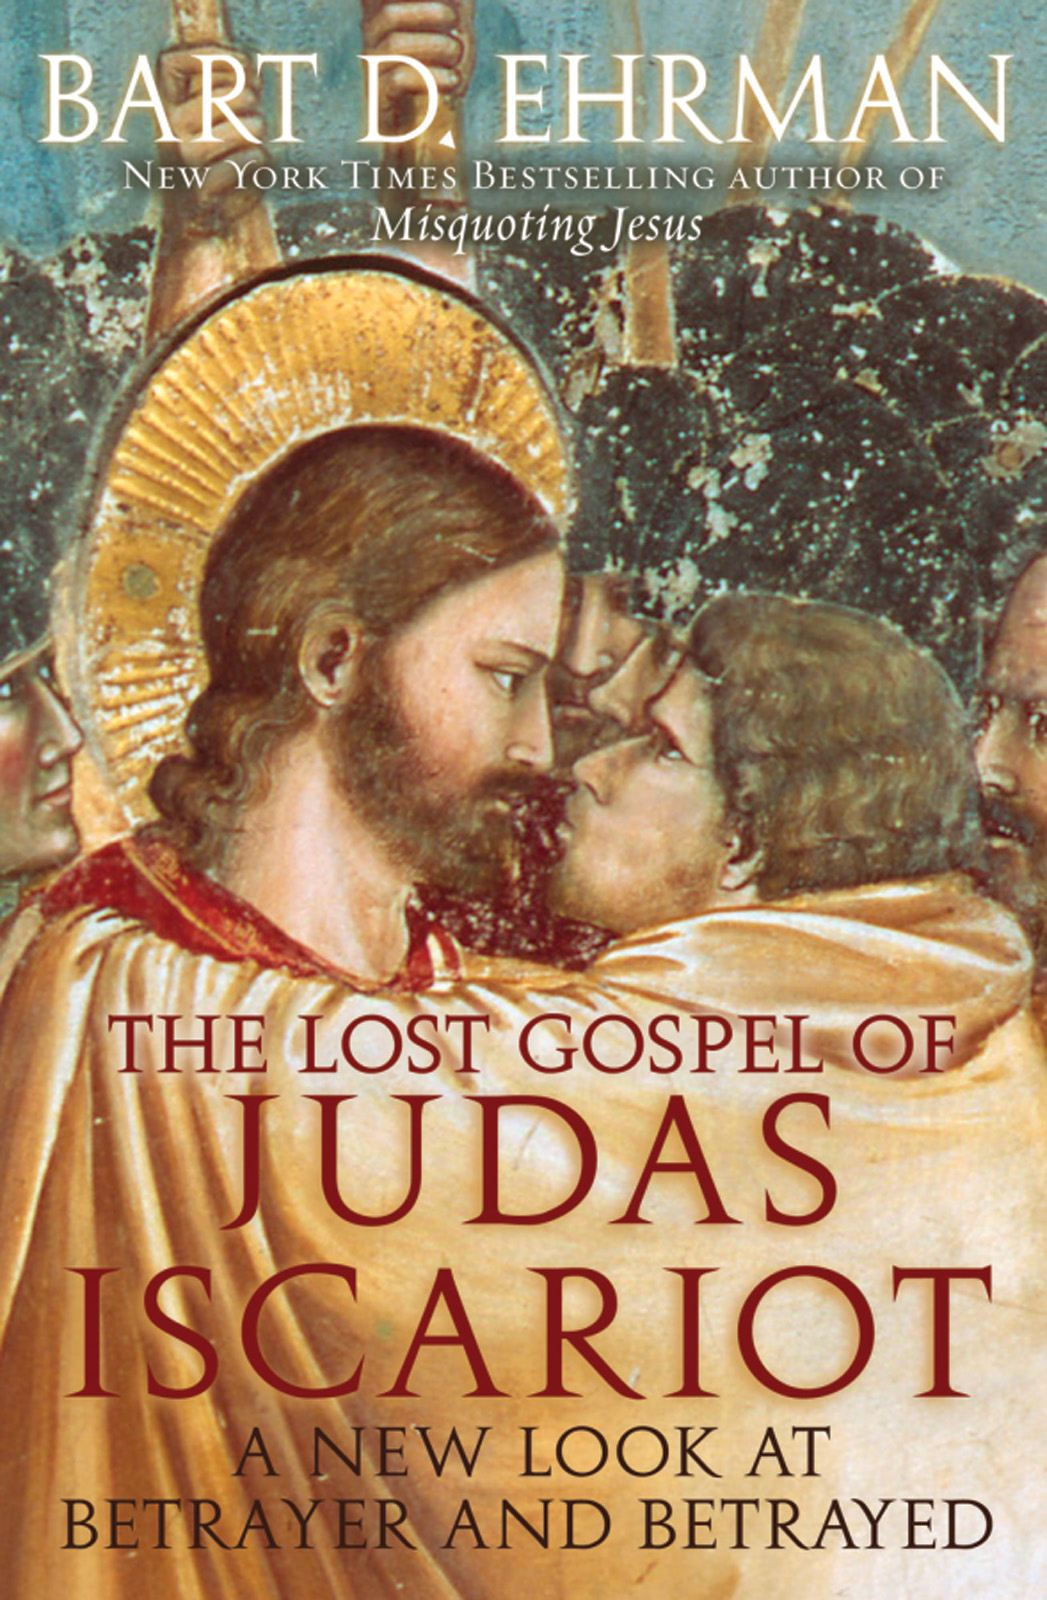 The Lost Gospel of Judas Iscariot : A New Look at Betrayer and Betrayed By: Bart D. Ehrman